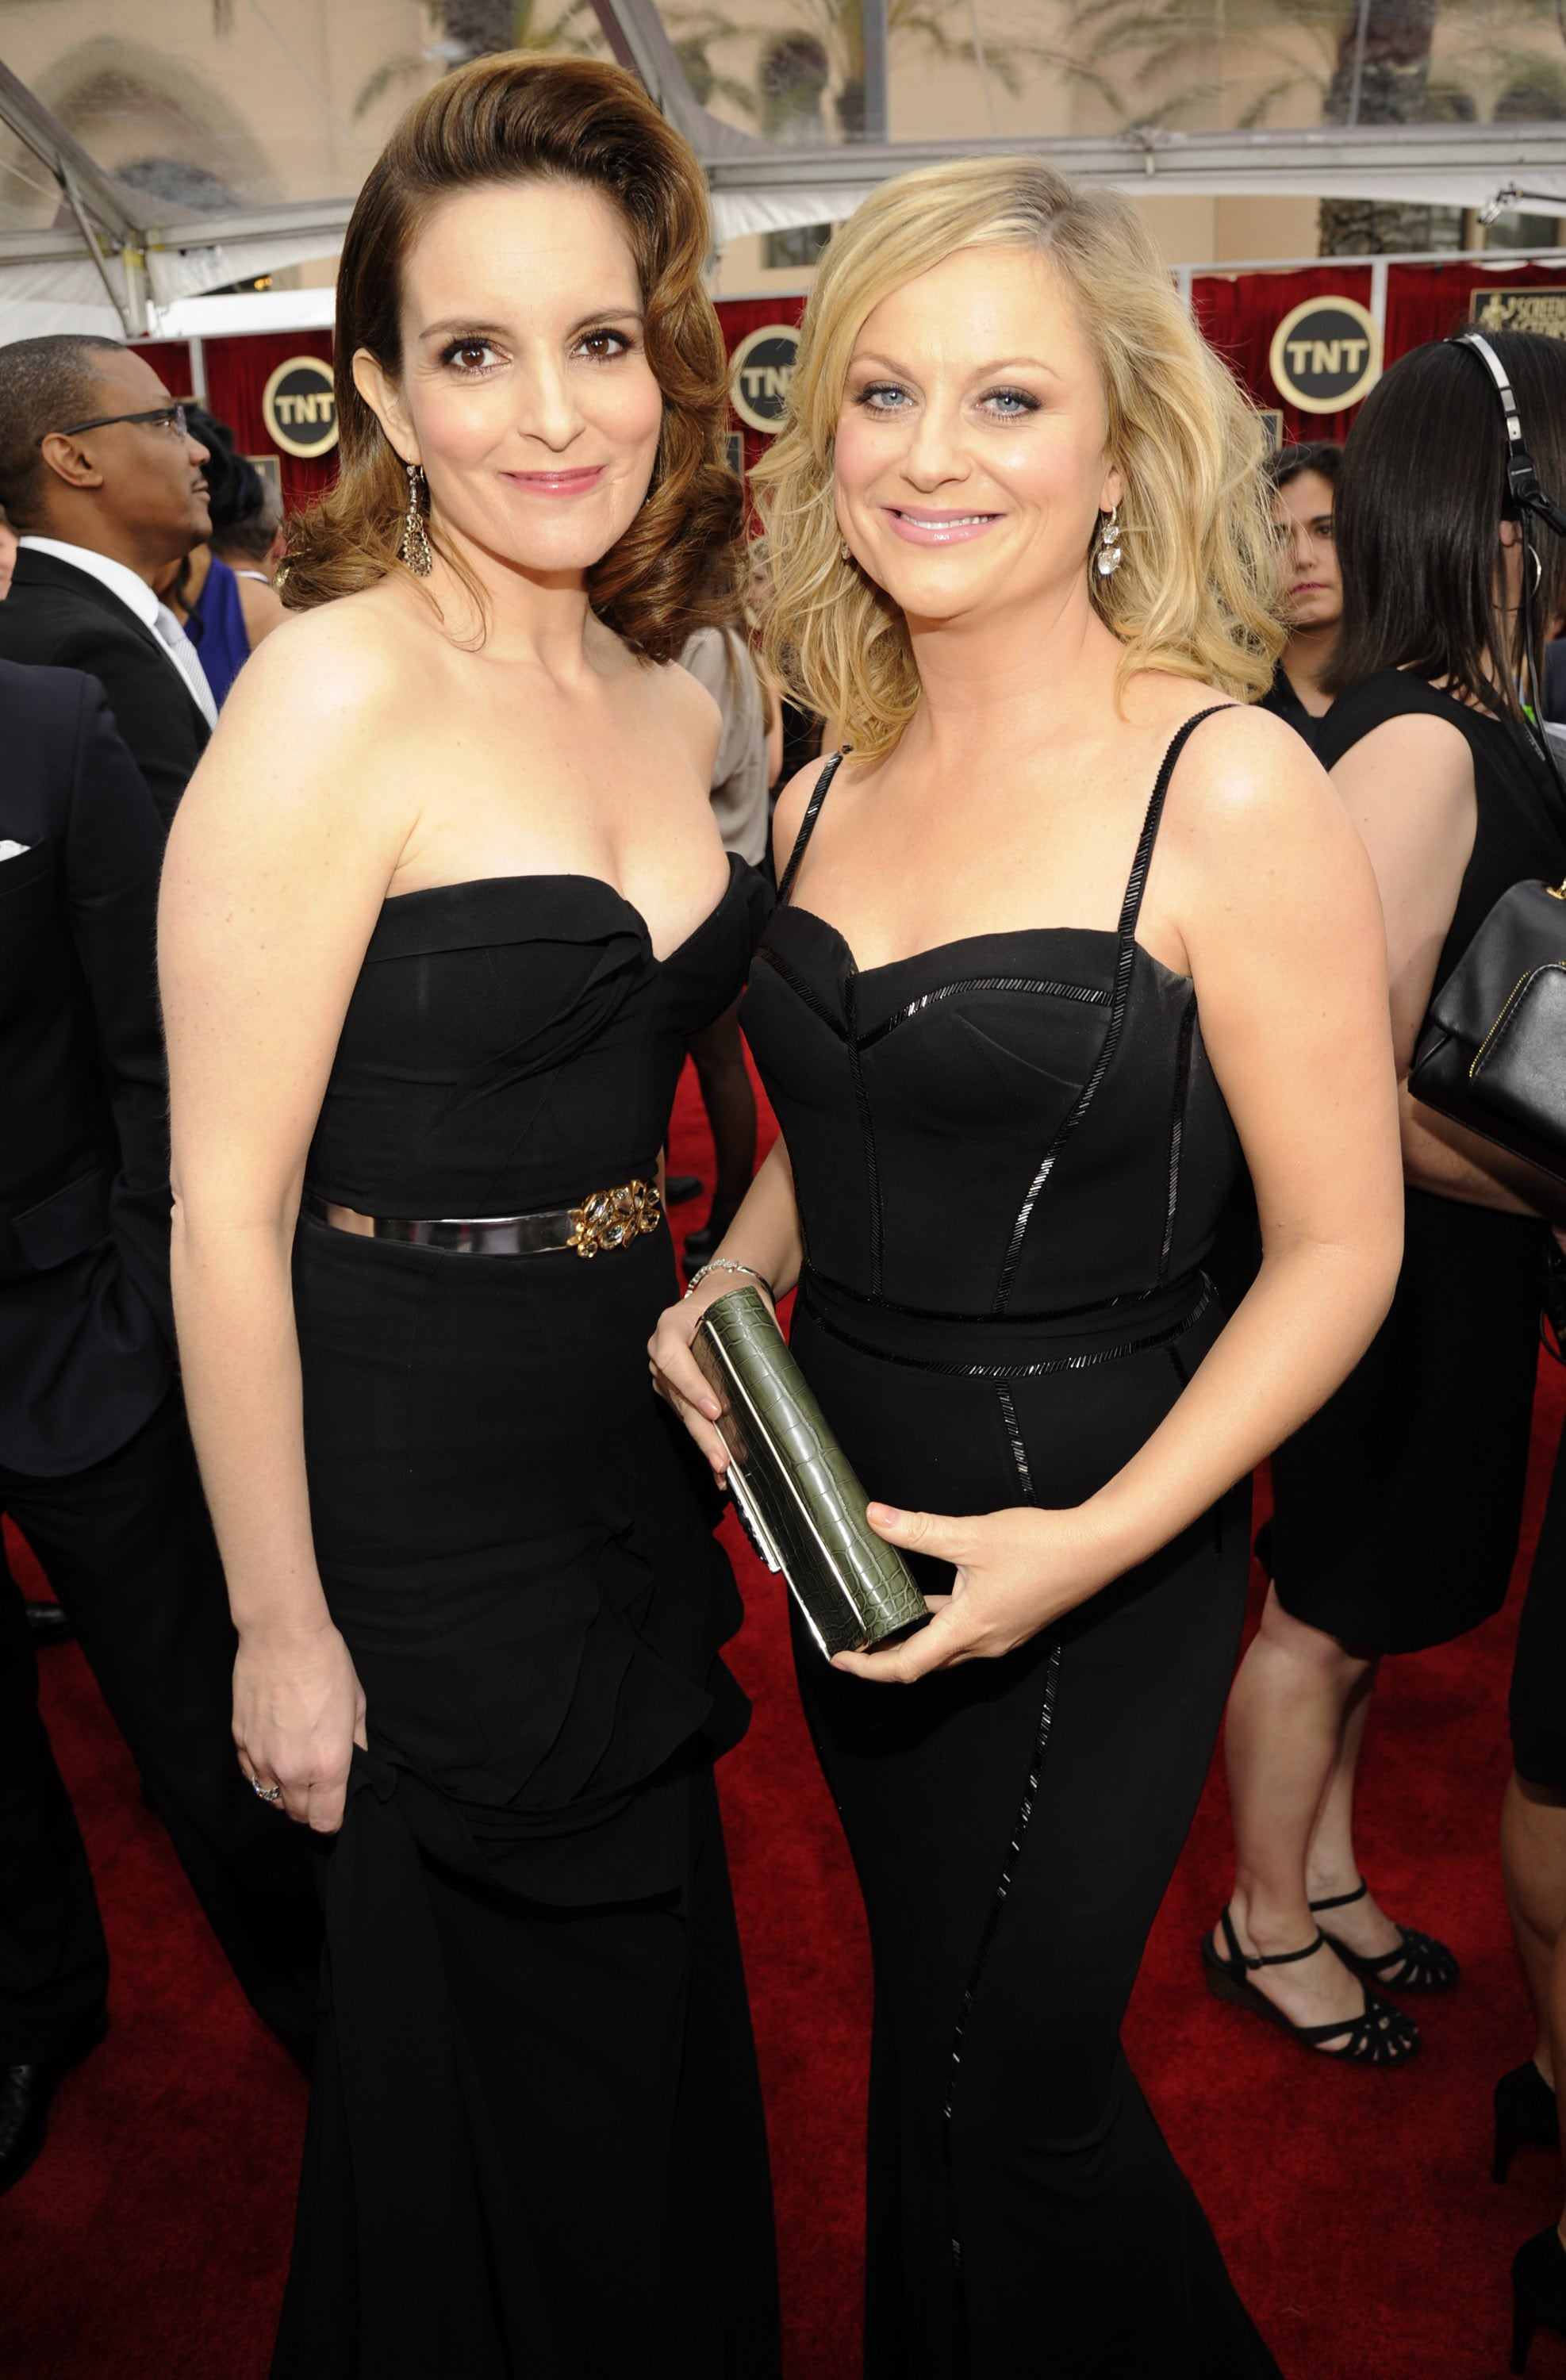 Following their Golden Globes hosting gig, Tina Fey and Amy Poehler walked the SAG Awards red carpet together in 2013.